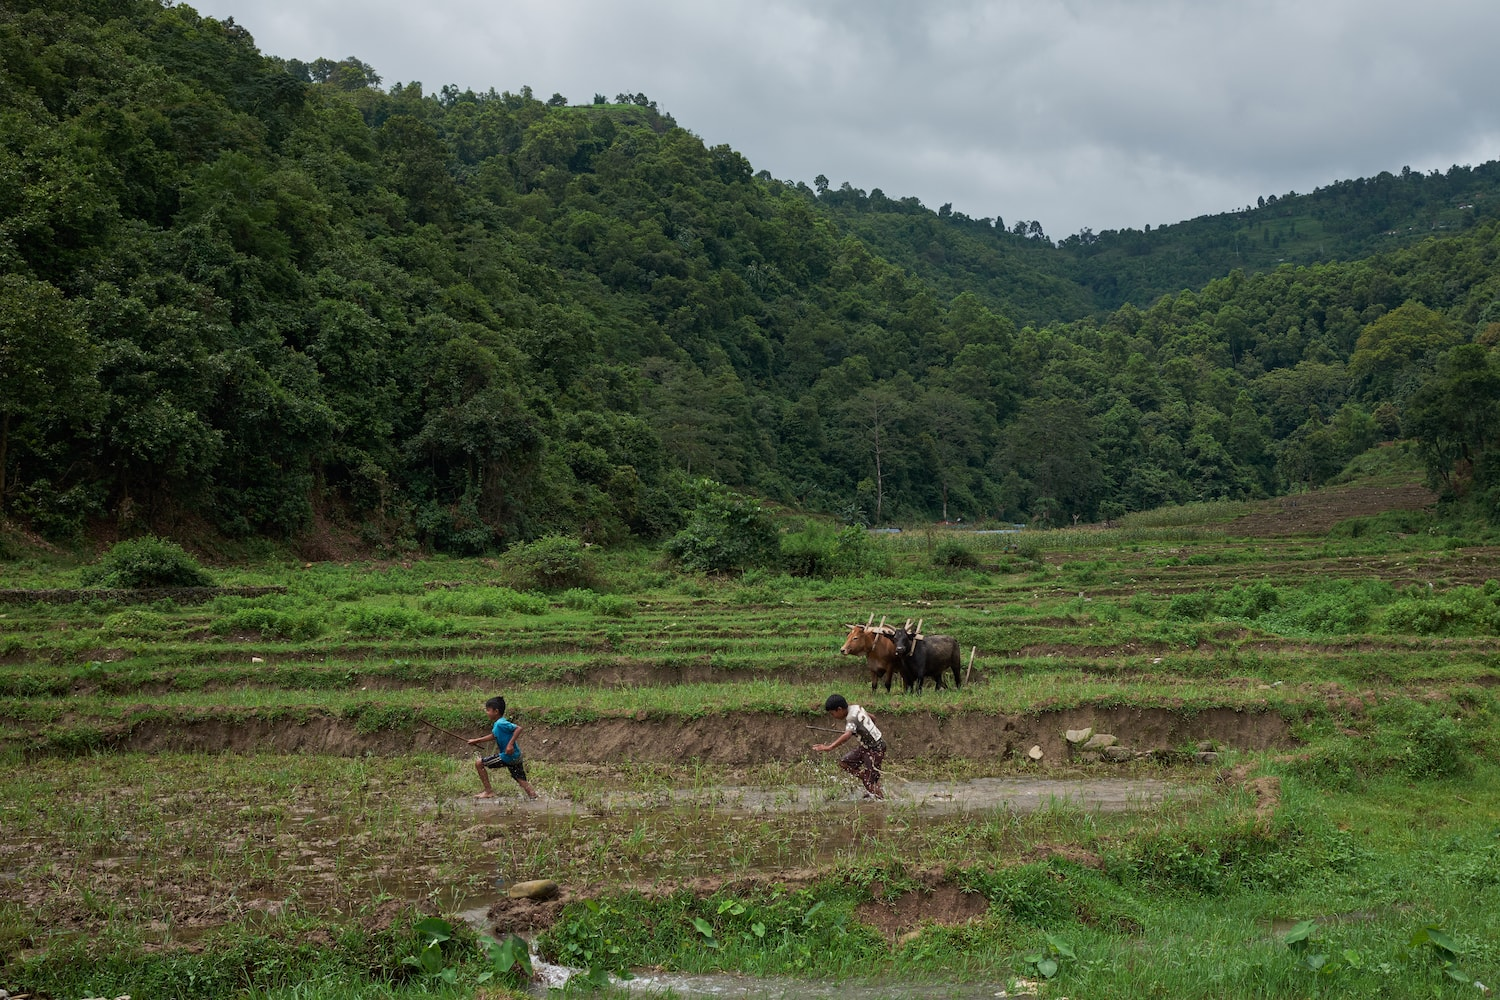 Kids play in a rice field in Begnas village as bullocks rest in the background